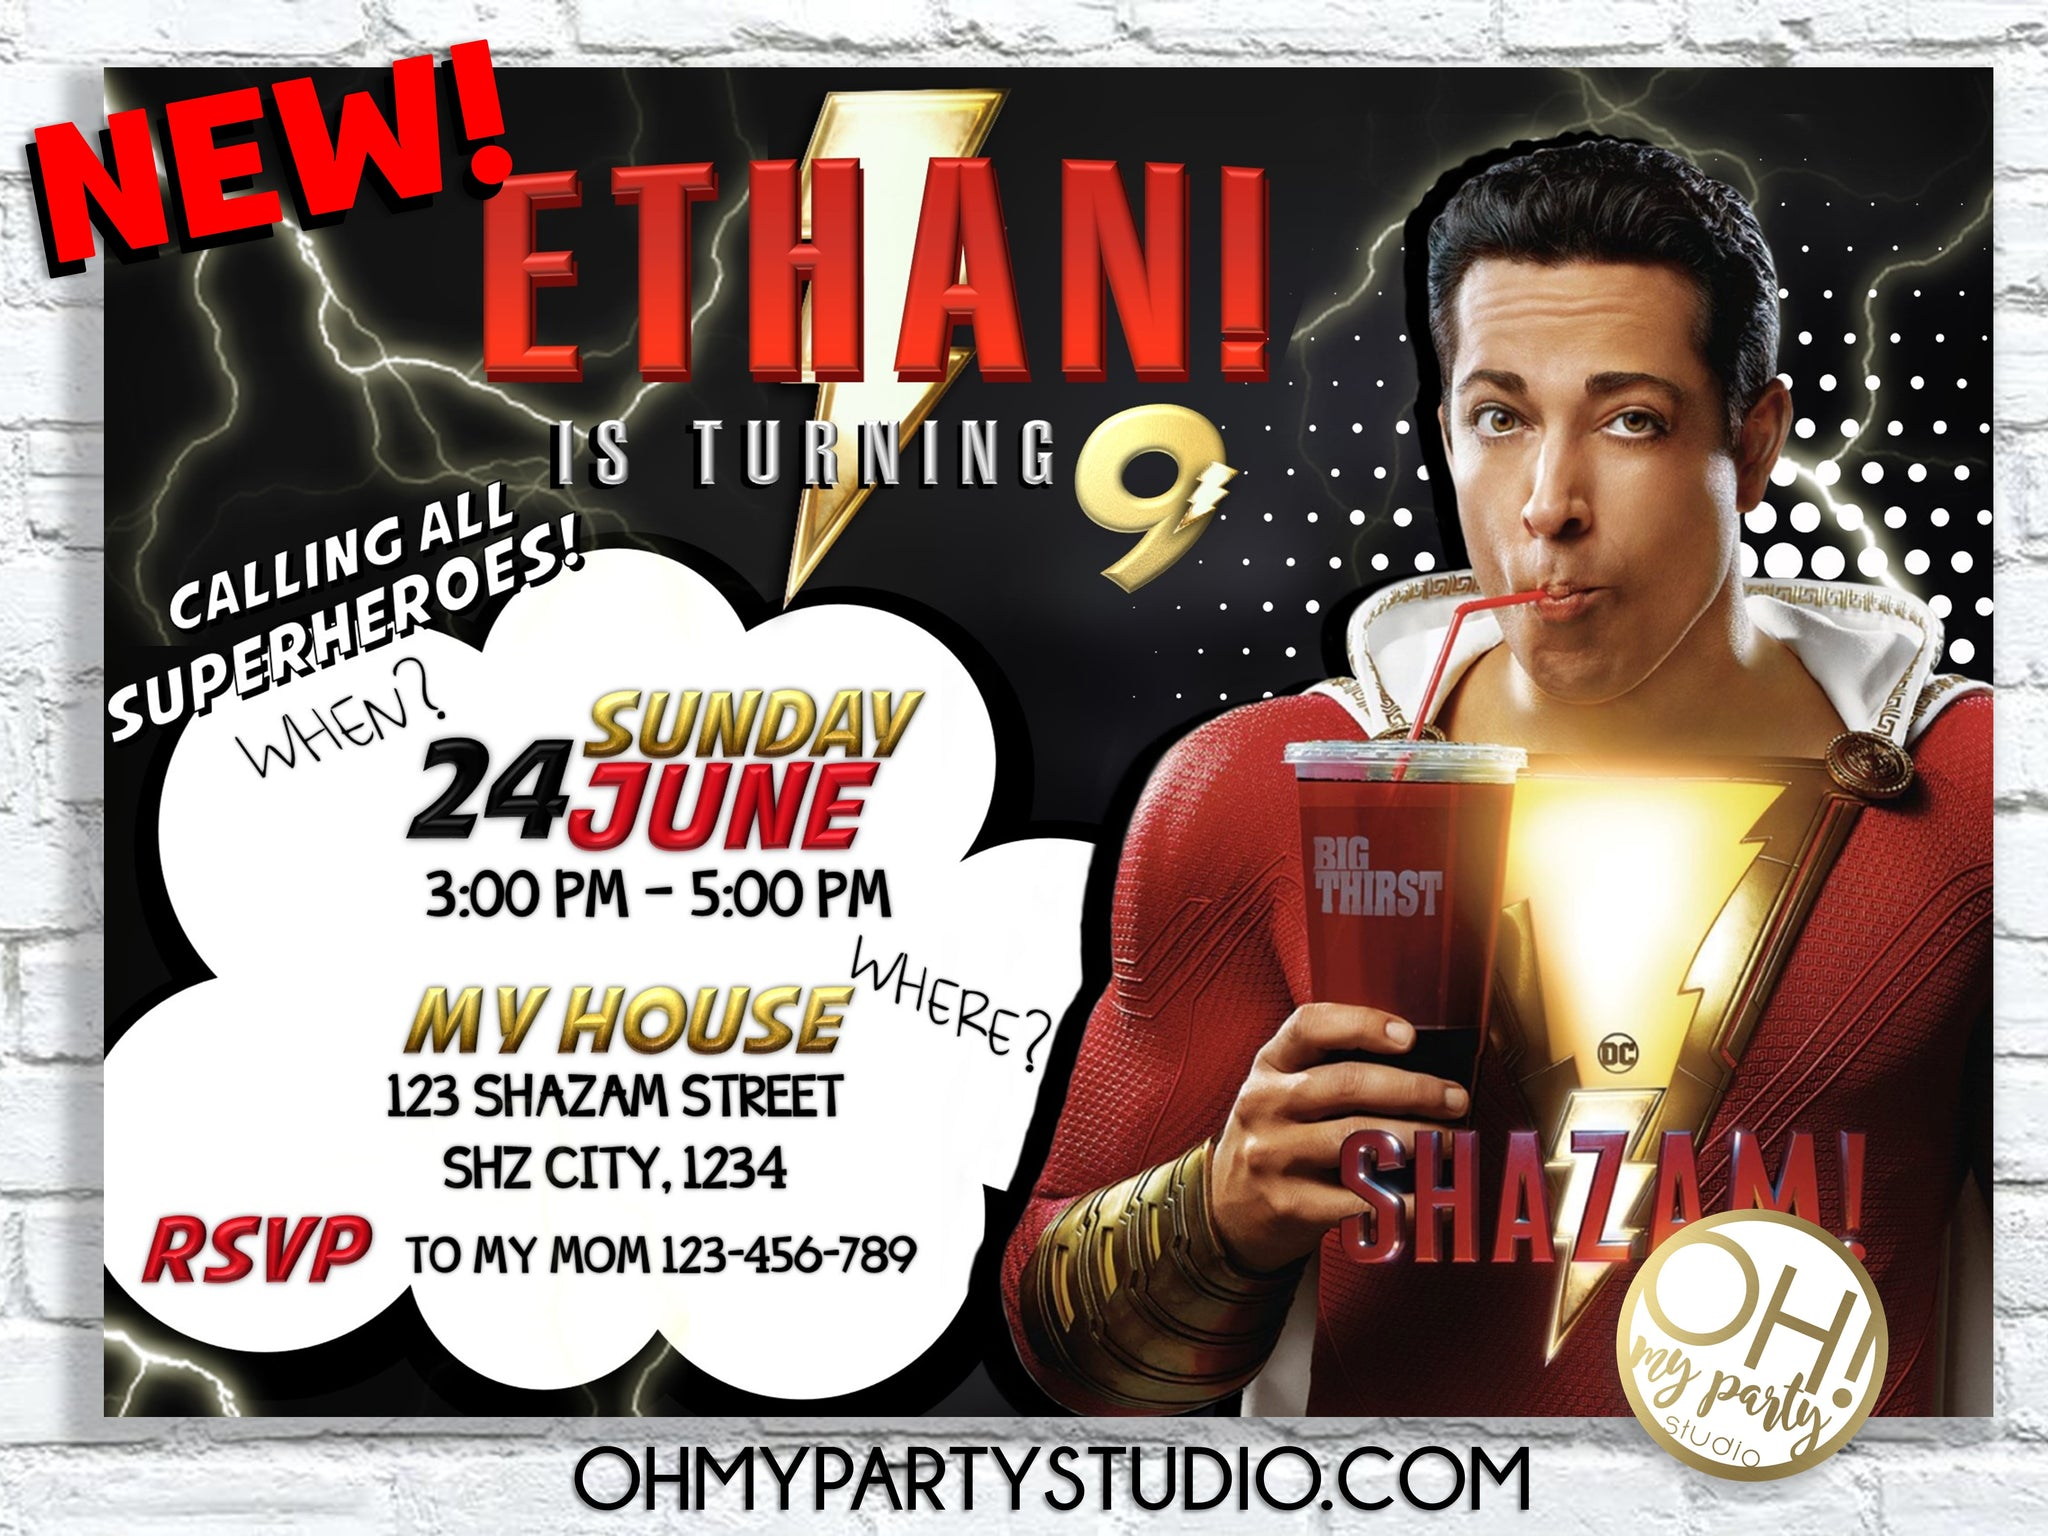 SHAZAM BIRTHDAY INVITATION, SHAZAM BIRTHDAY, SHAZAM PARTY, SHAZAM BIRTHDAY PARTY, SHAZAM INVITATION, SHAZAM INVITATIONS, SHAZAM PARTY IDEAS, SHAZAM